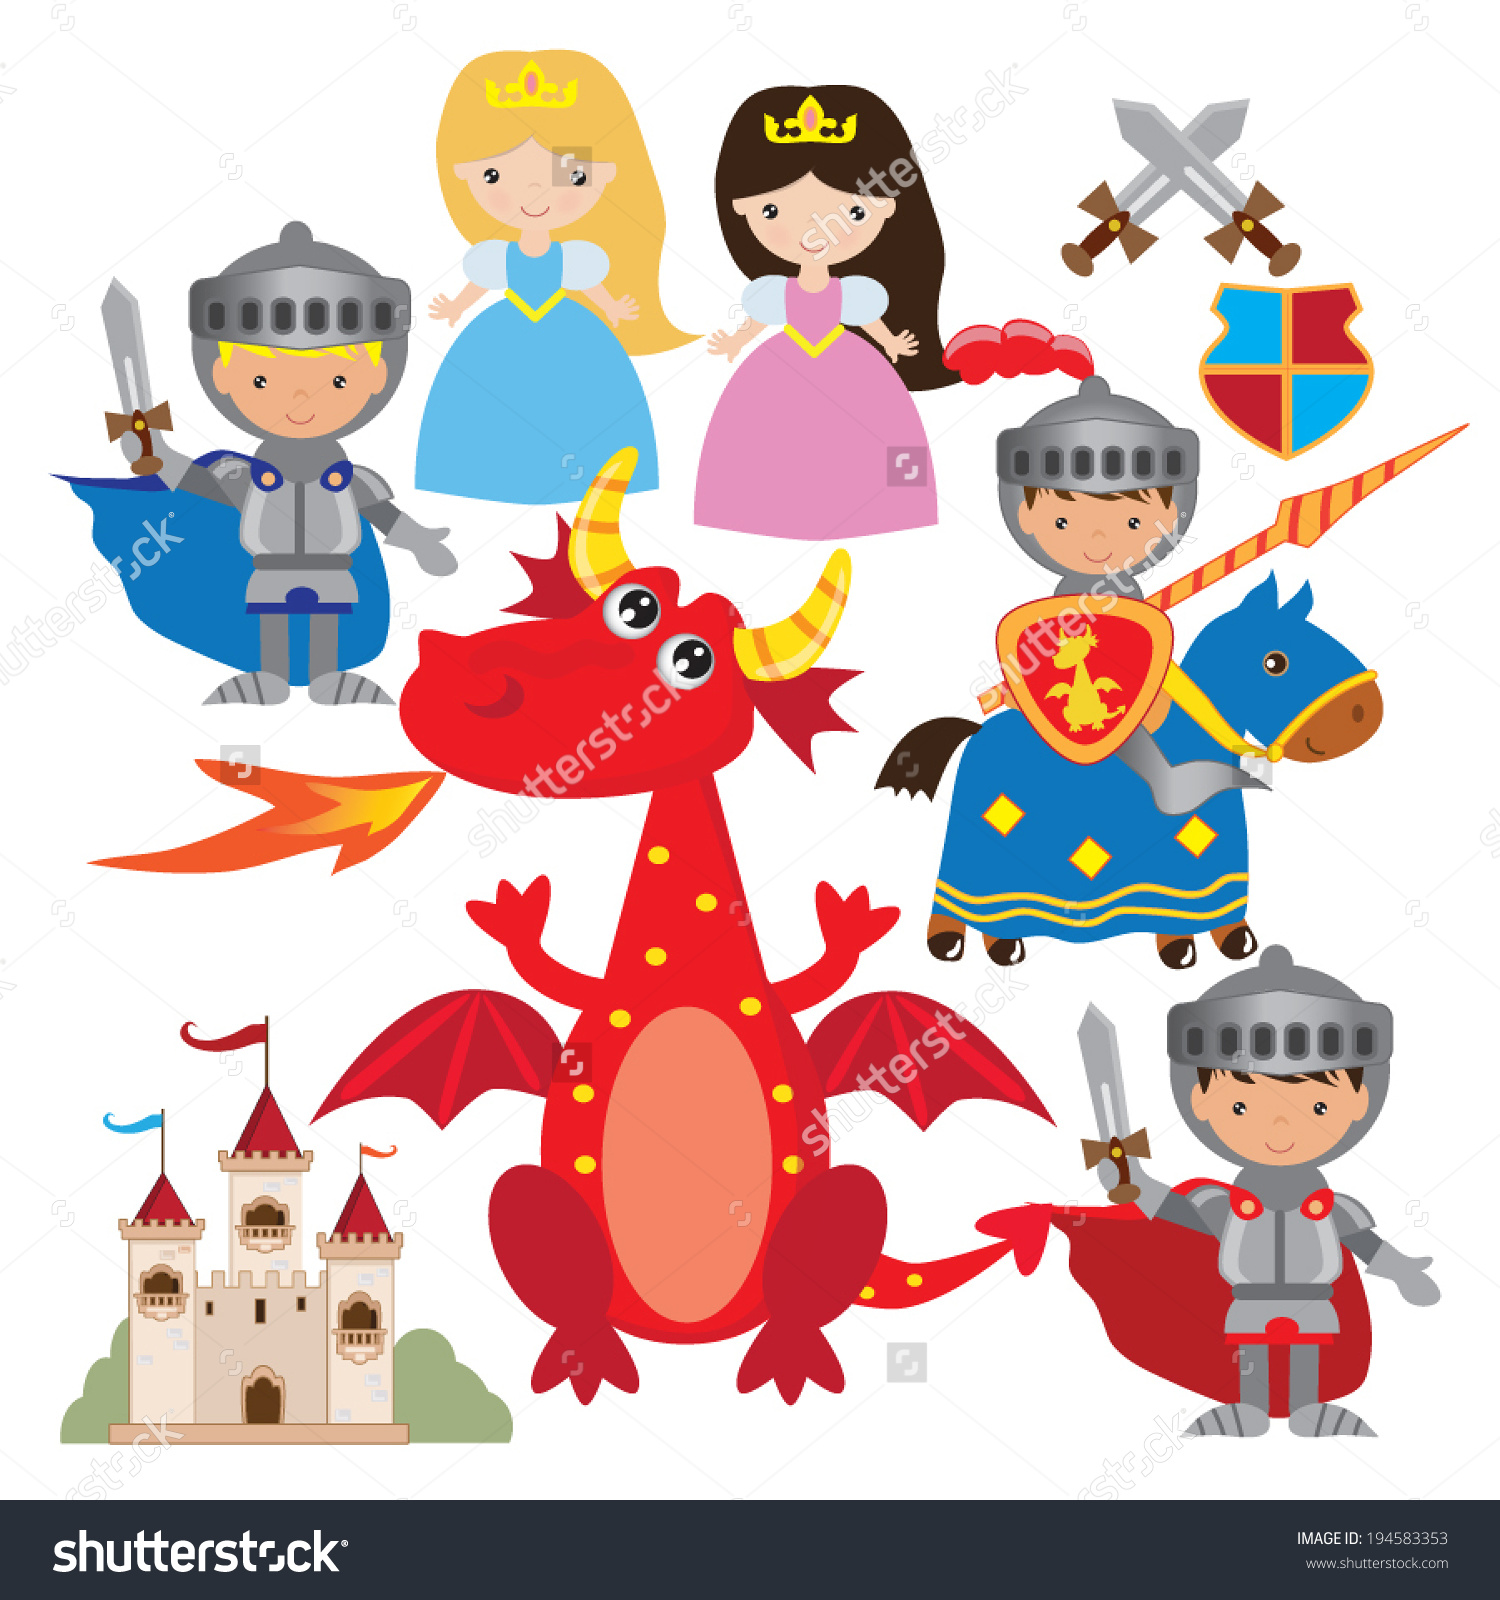 Fairy Tale Medieval Knight Princess Dragon Stock Vector 194583353.